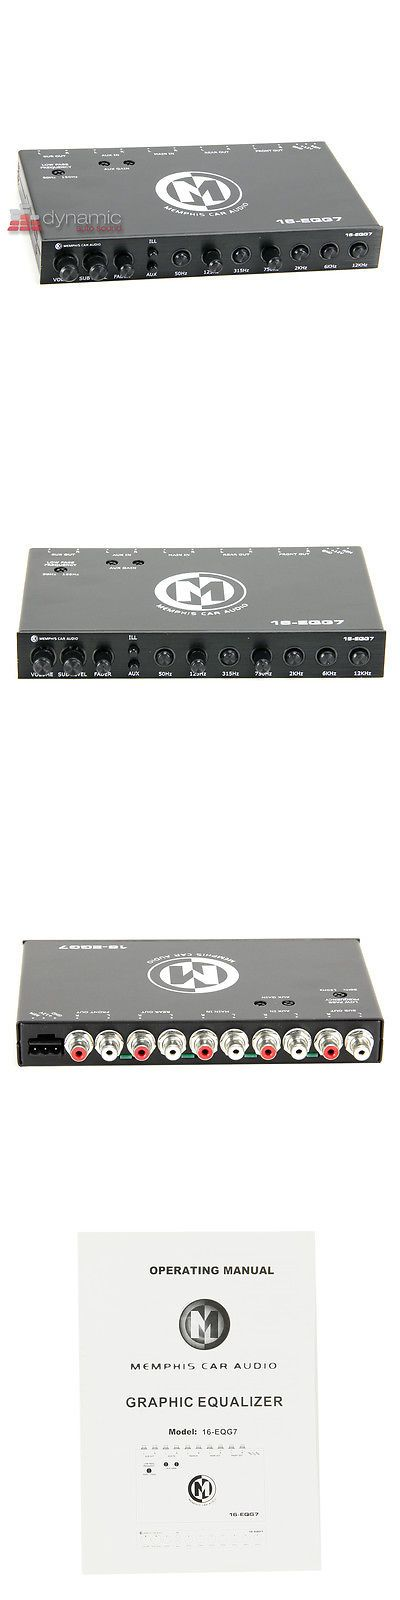 Signal Processors: Memphis Audio 16-Eqg7 Car Stereo 7-Band Graphic Sound Processor Equalizer Eq New BUY IT NOW ONLY: $149.95